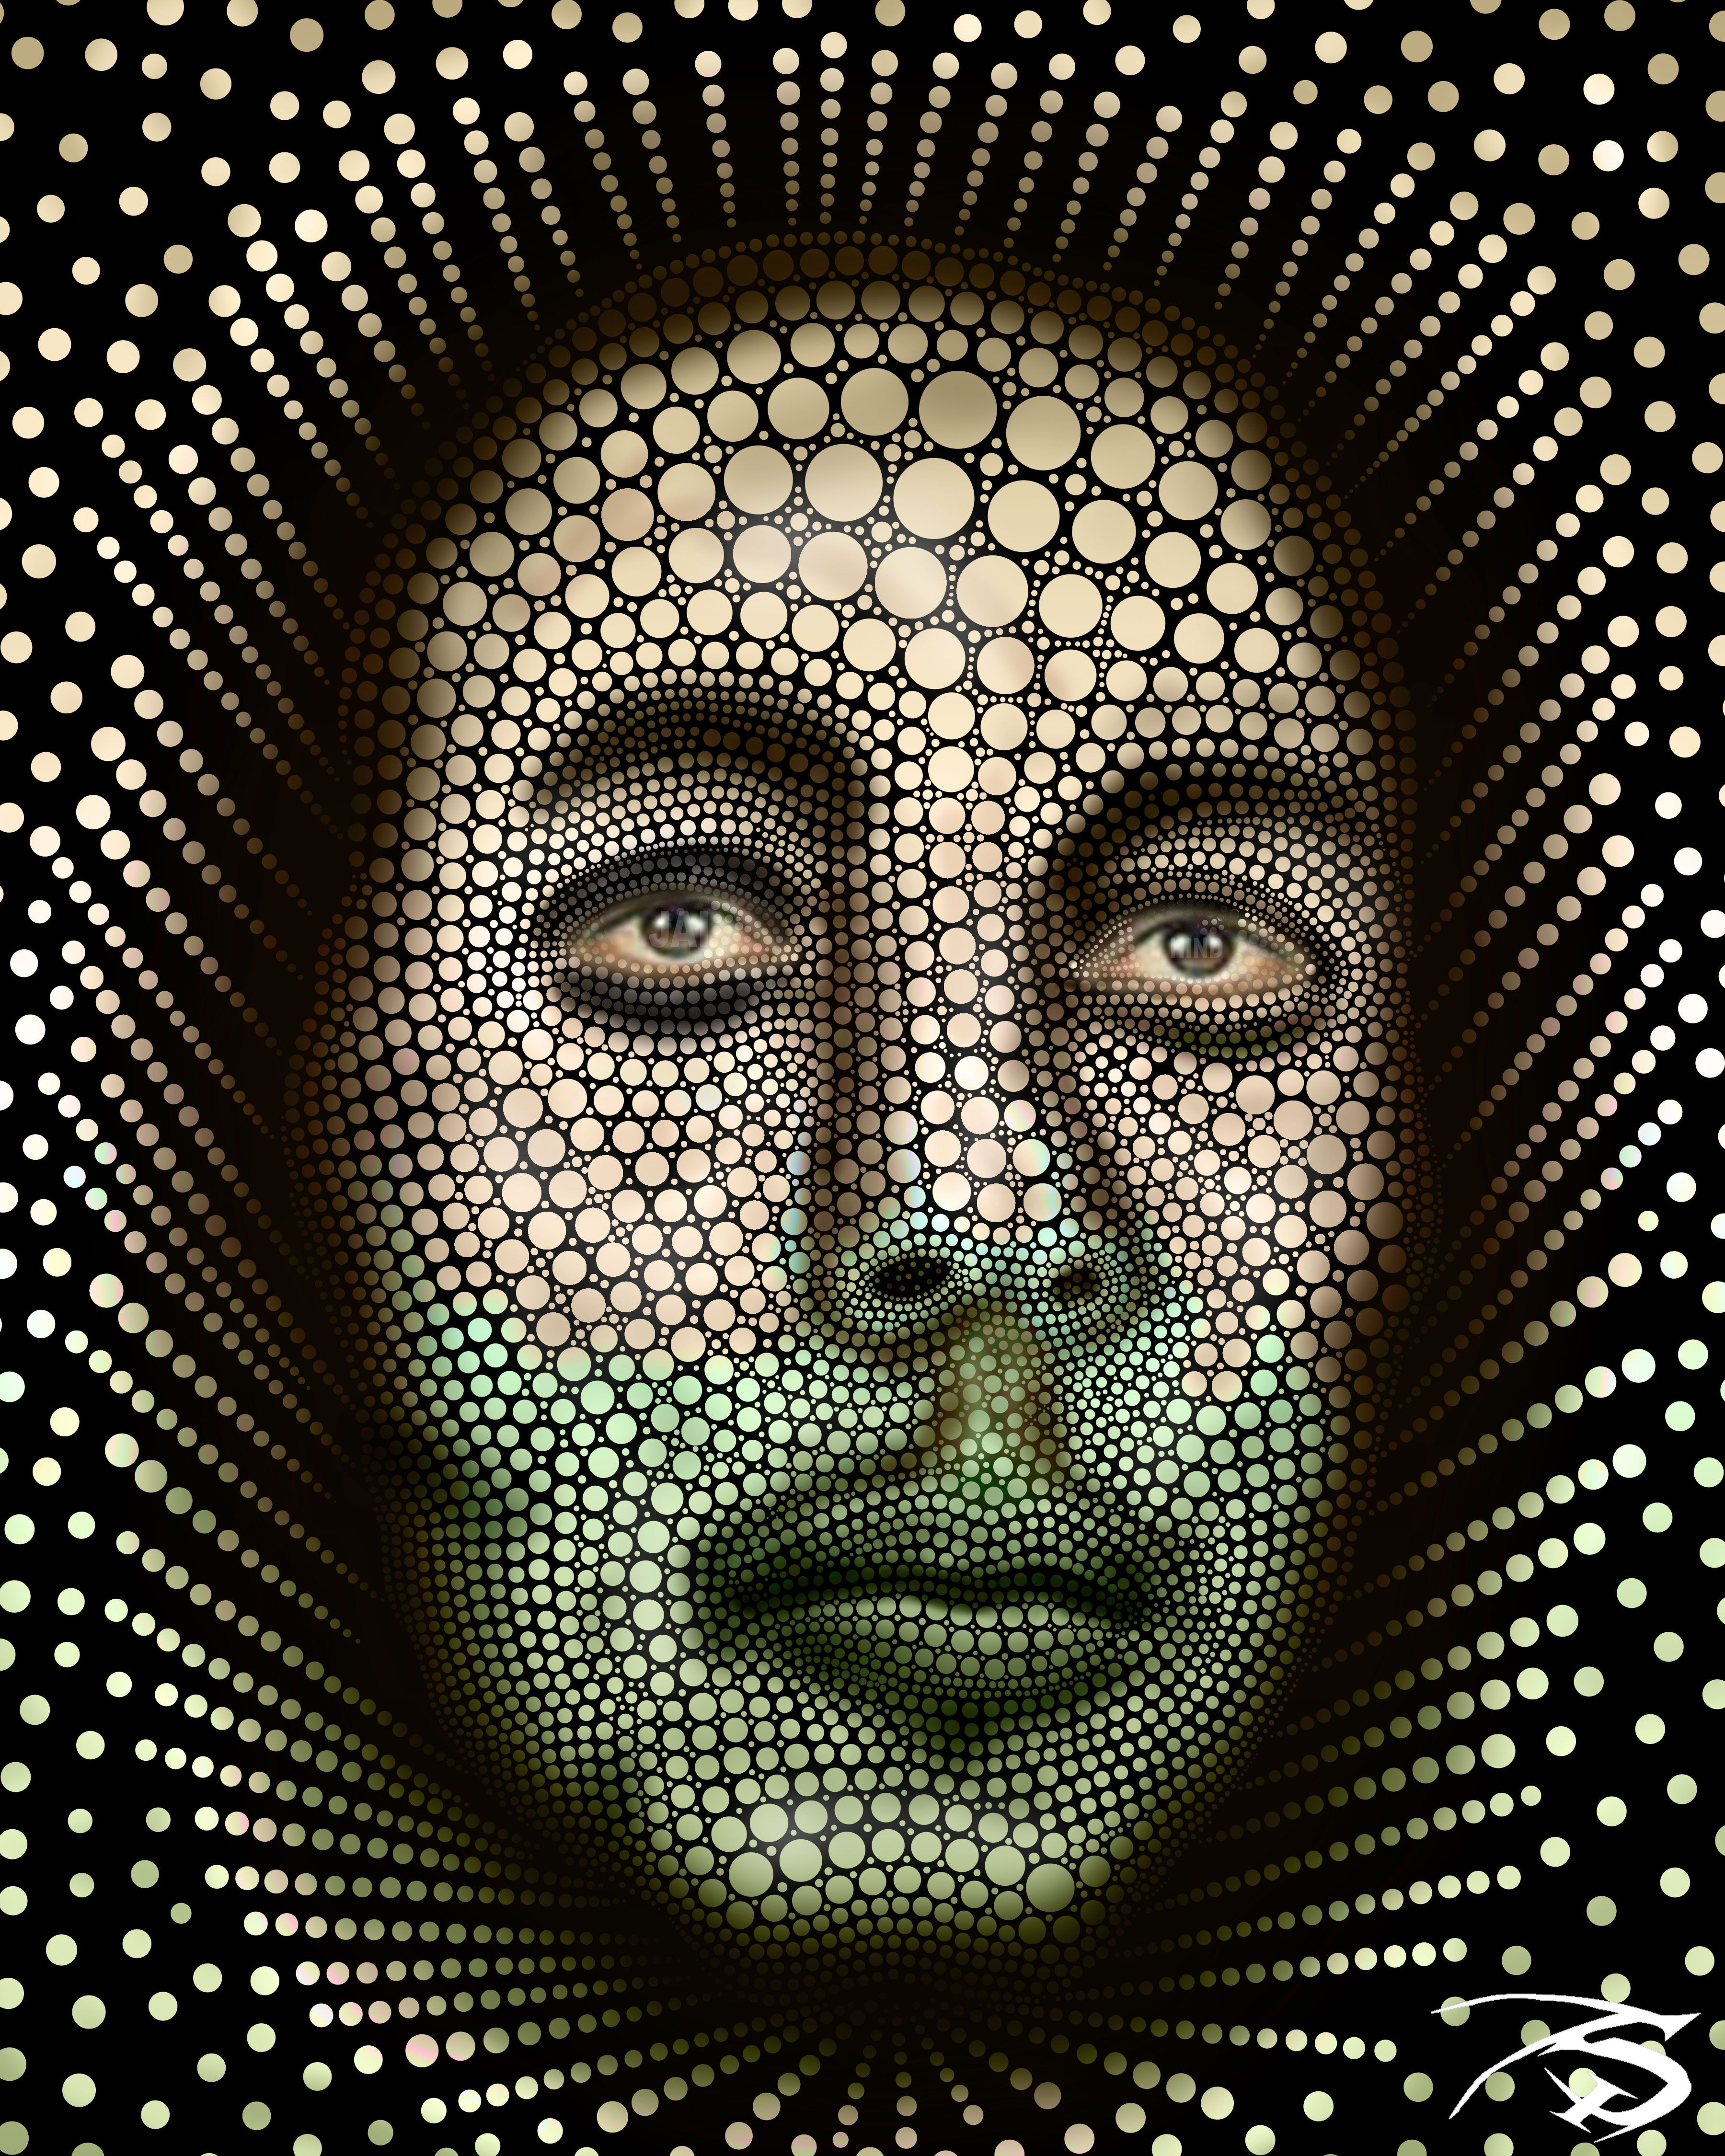 Face design with dots face design dots it works photoshop abstract